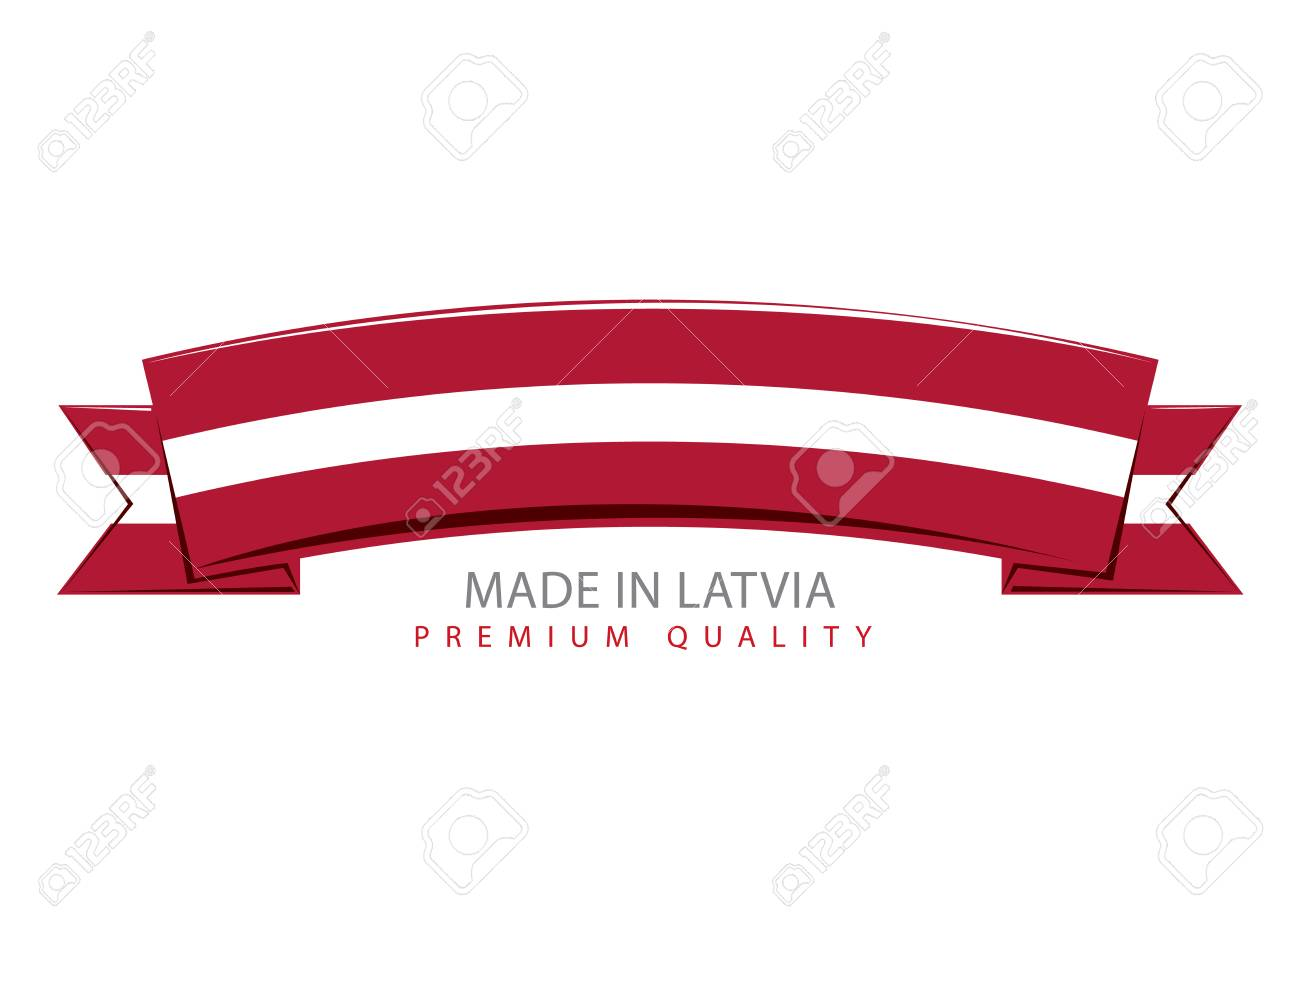 made in latvia ribbon latvian flag vector art royalty free rh 123rf com ribbon vector art free download ribbon vector art free download